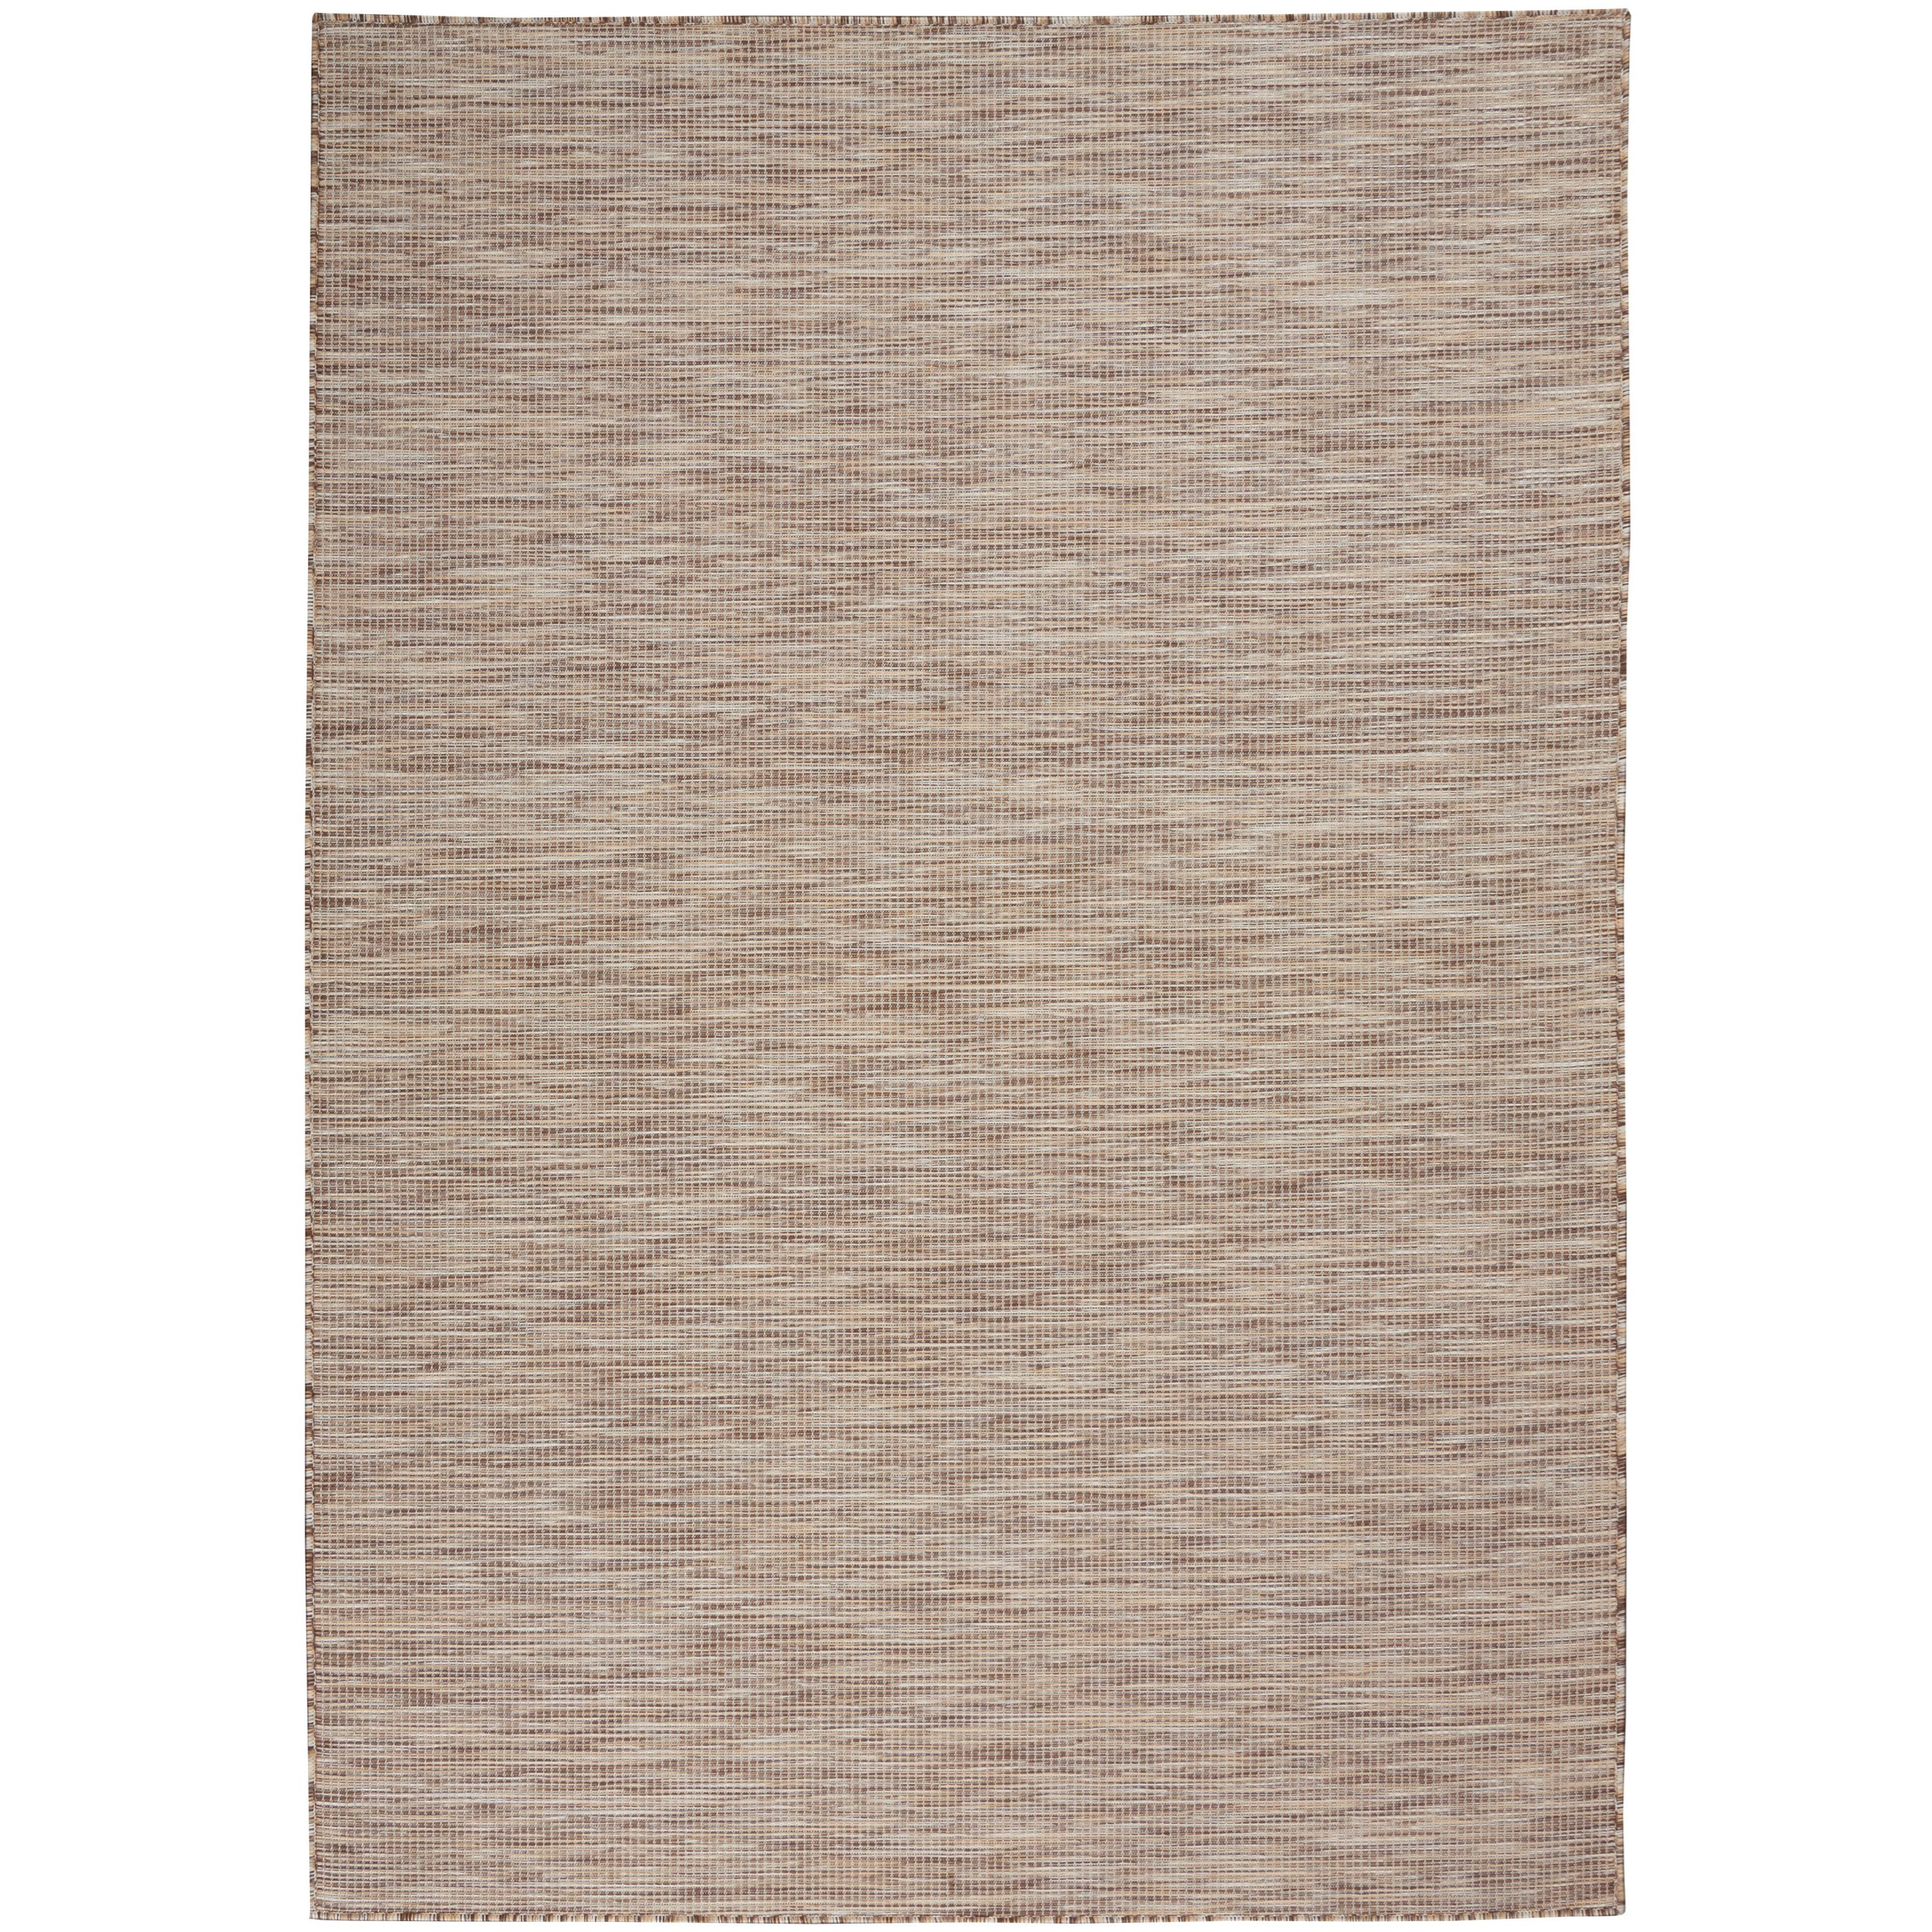 Positano 2020 5' x 7' Rug by Nourison at Home Collections Furniture